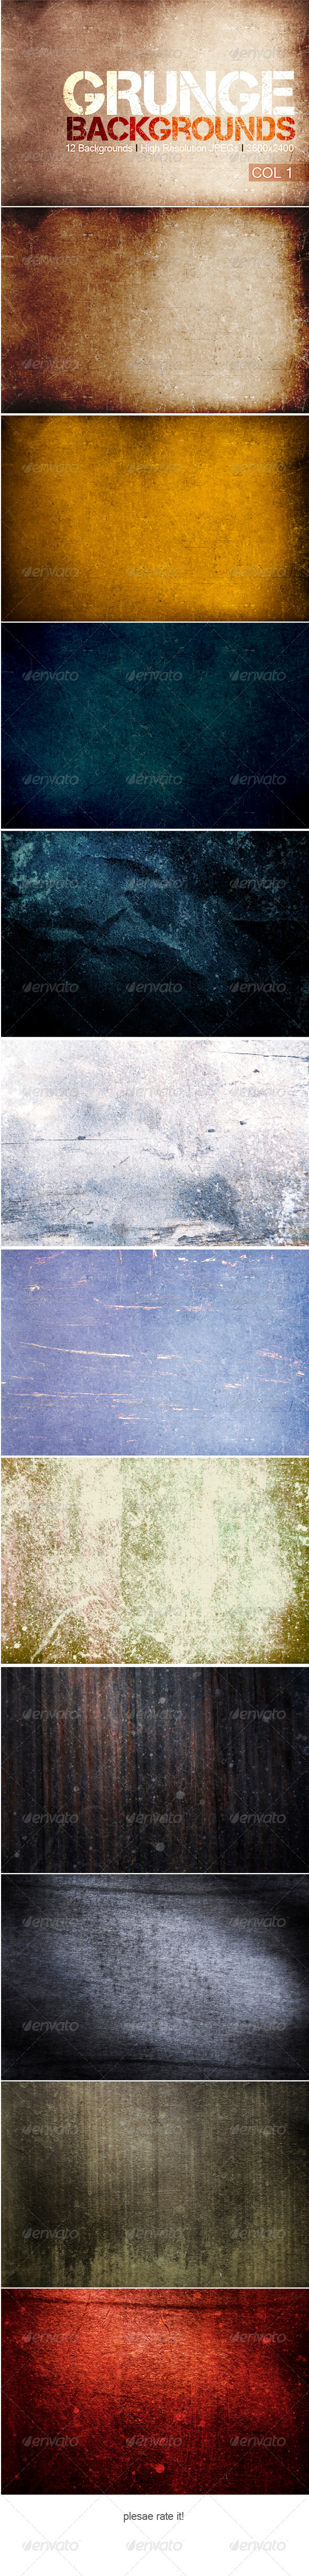 Grunge Backgrounds - Abstract Backgrounds